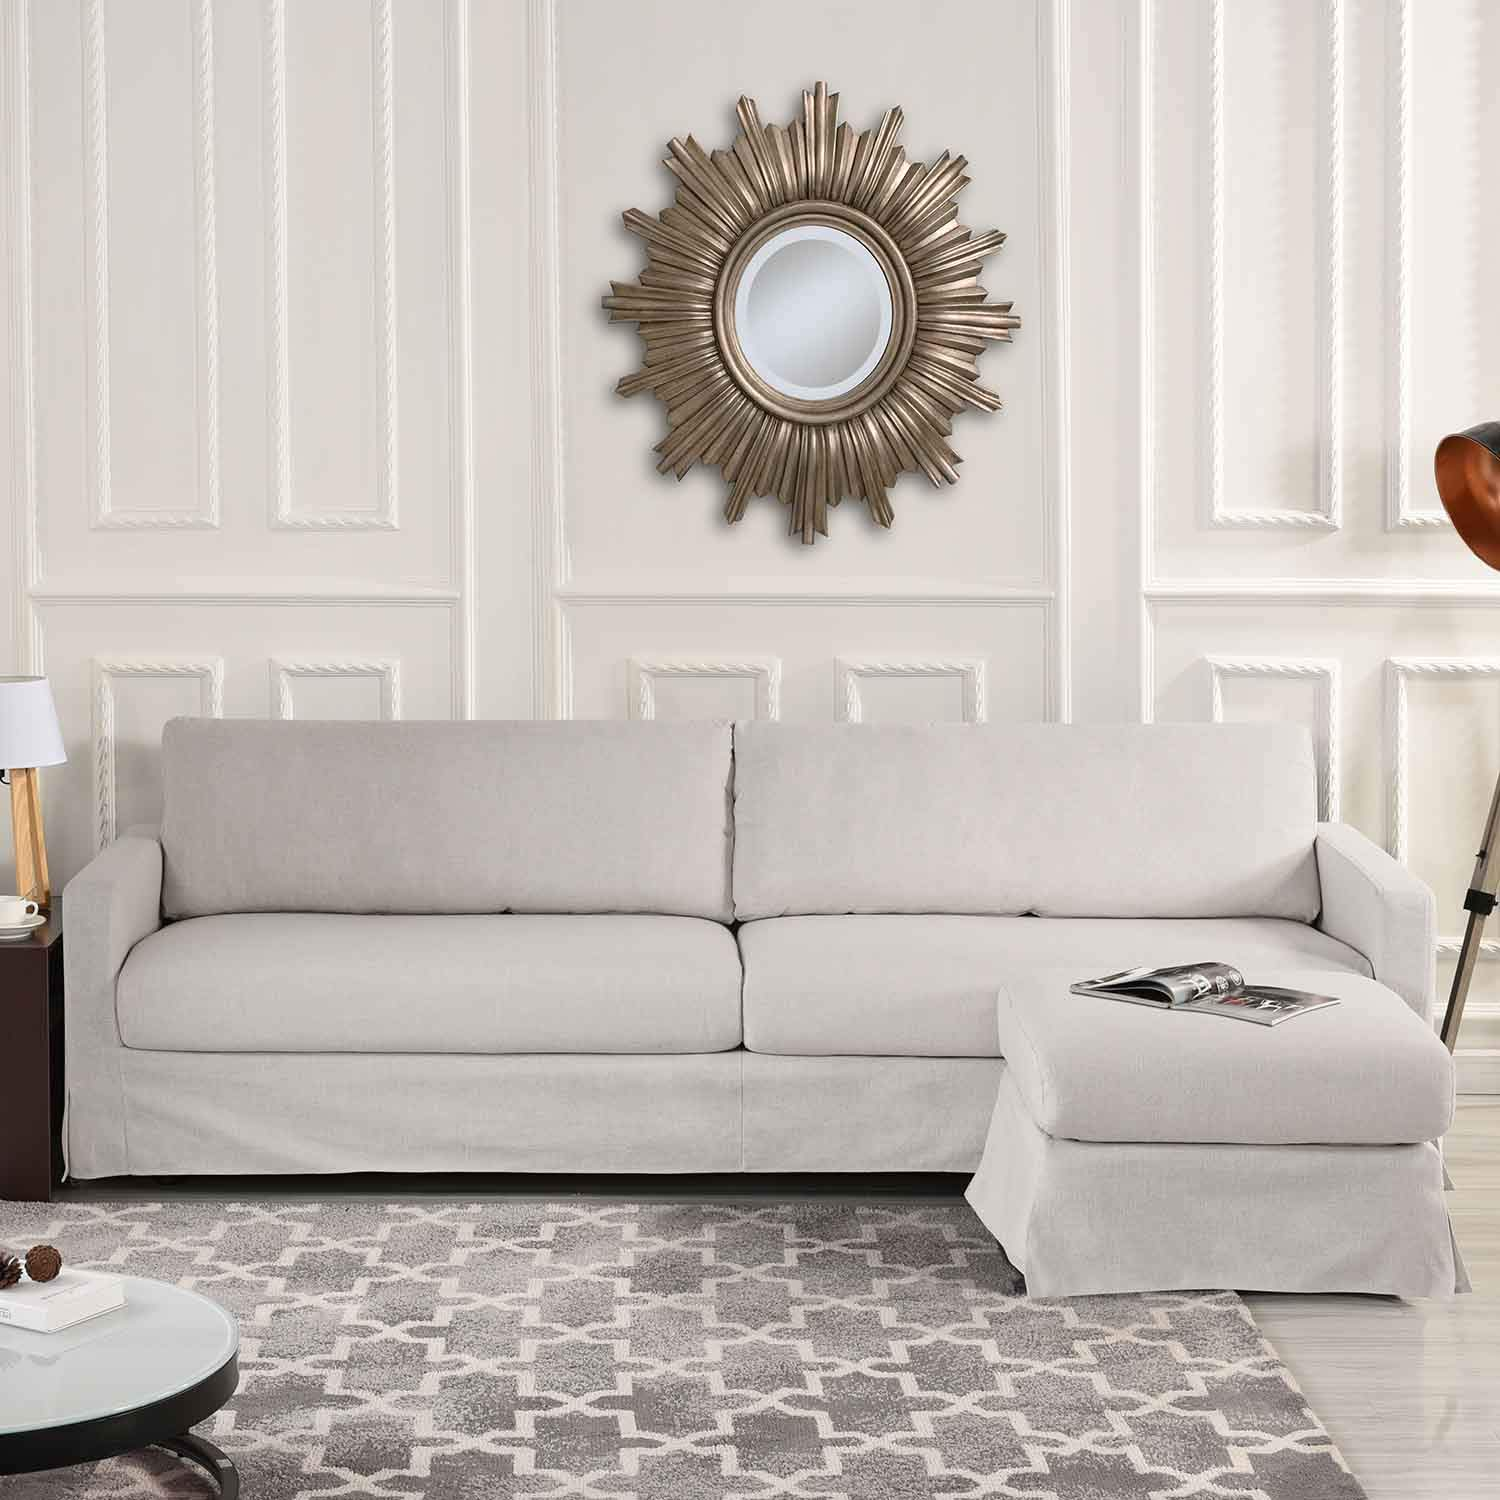 Surprising Amazon Com Beige Woven Linen Slipcover Sectional Sofa Couch Ncnpc Chair Design For Home Ncnpcorg